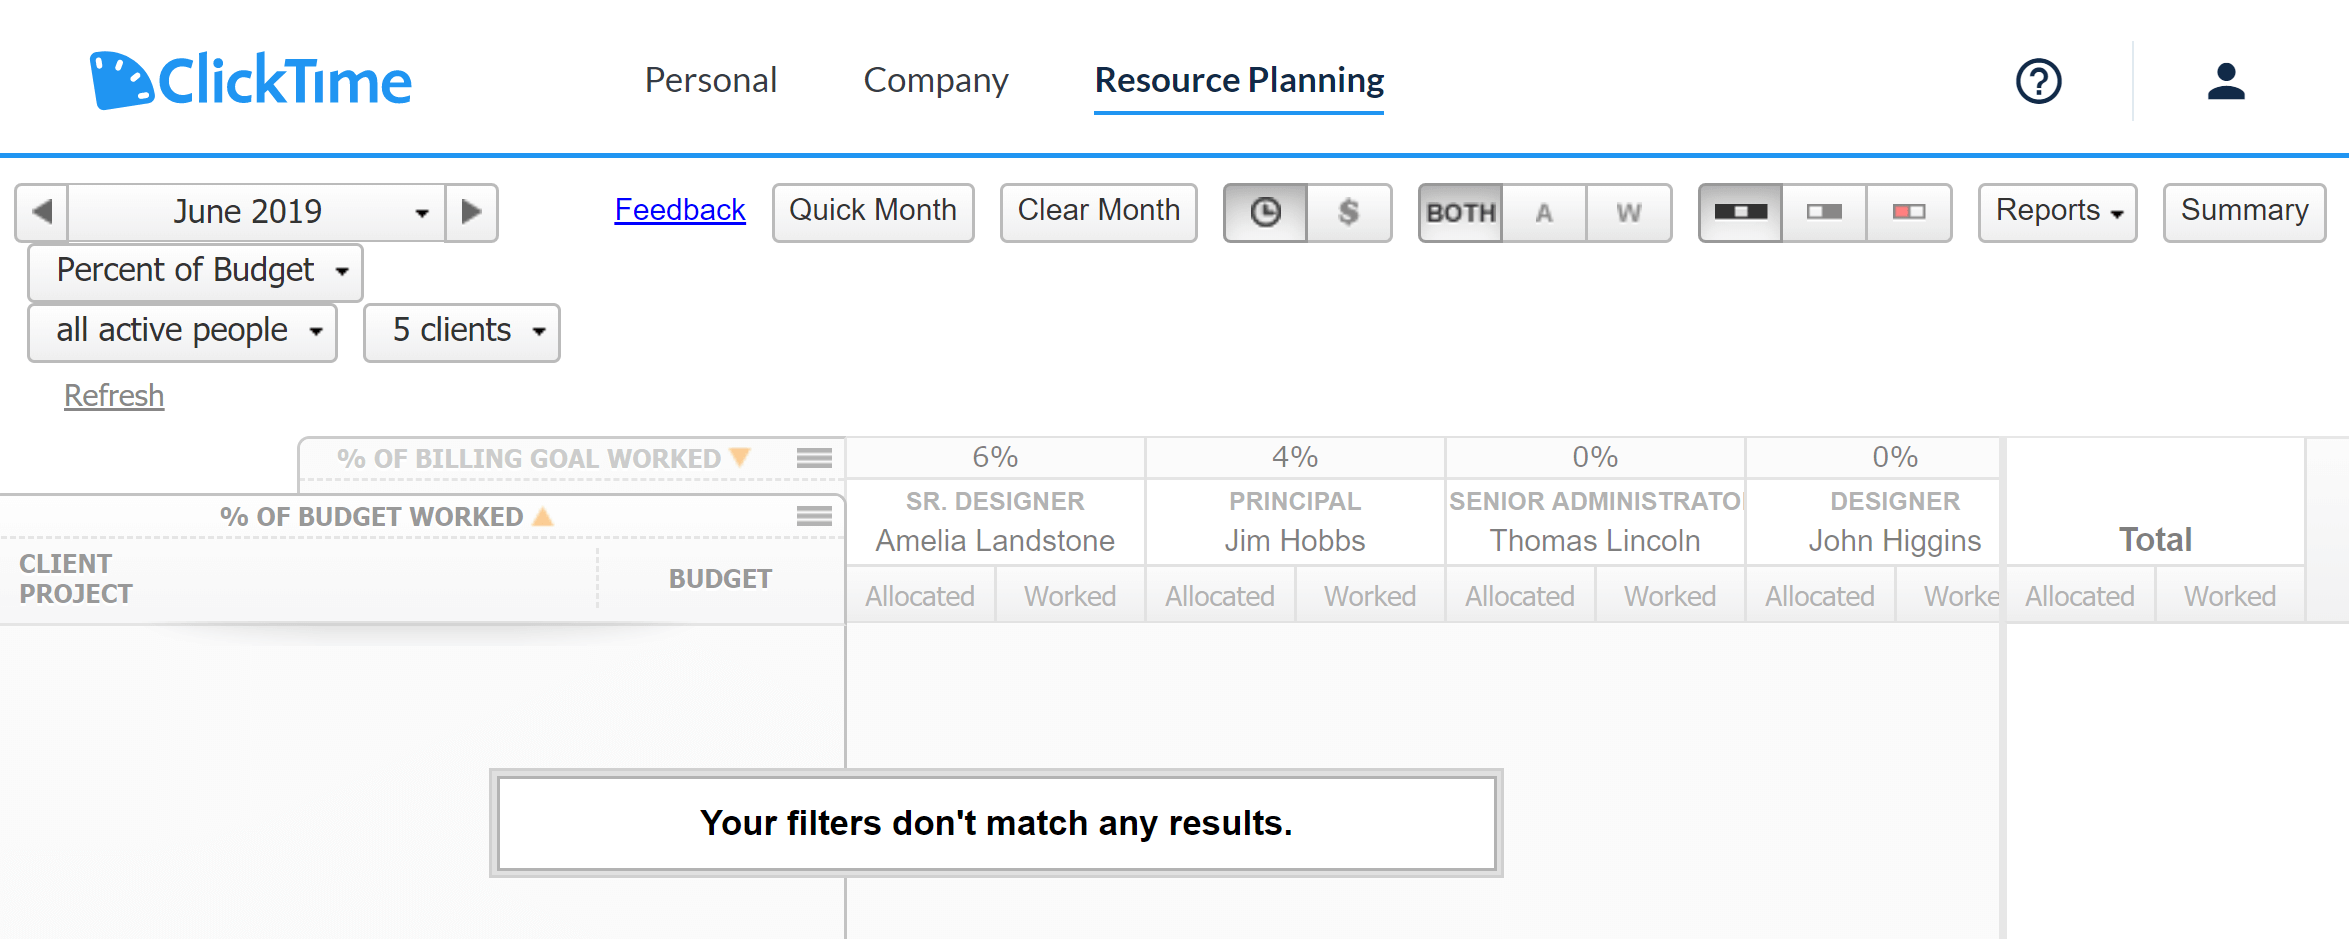 Resource_Planning_8.png